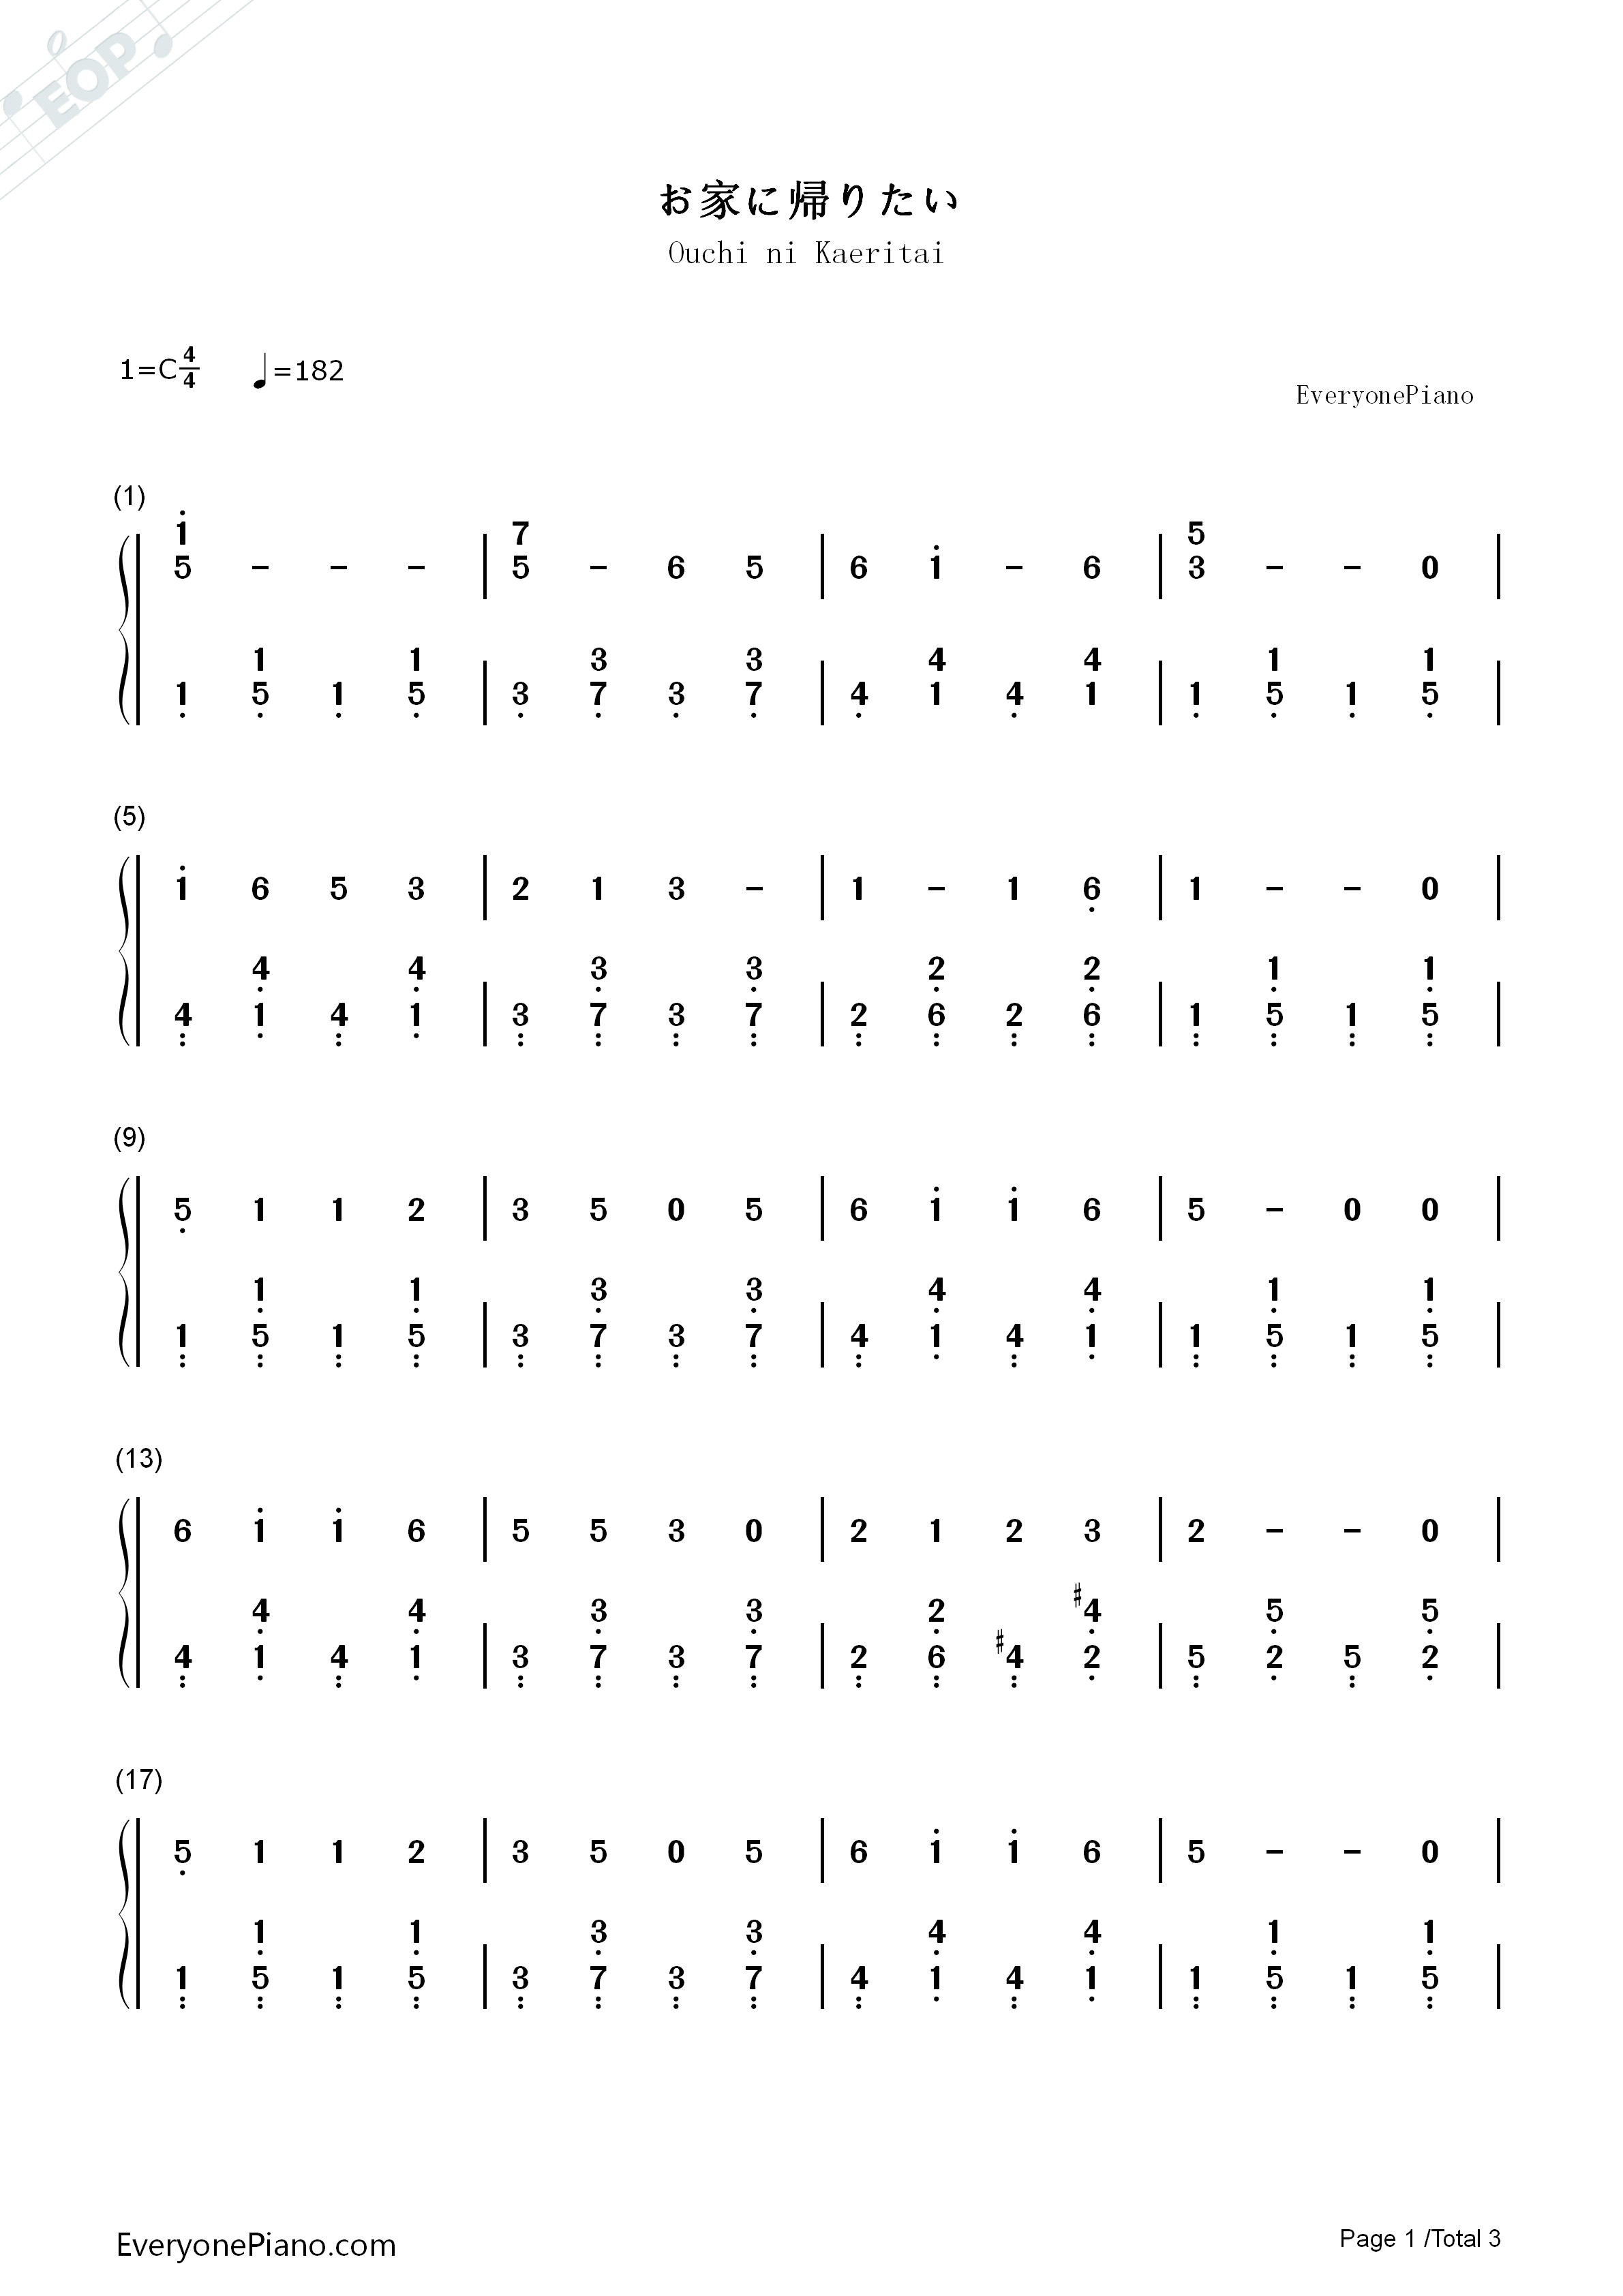 Ouchi ni Kaeritai-KonoSuba 2 ED Numbered Musical Notation Preview 1